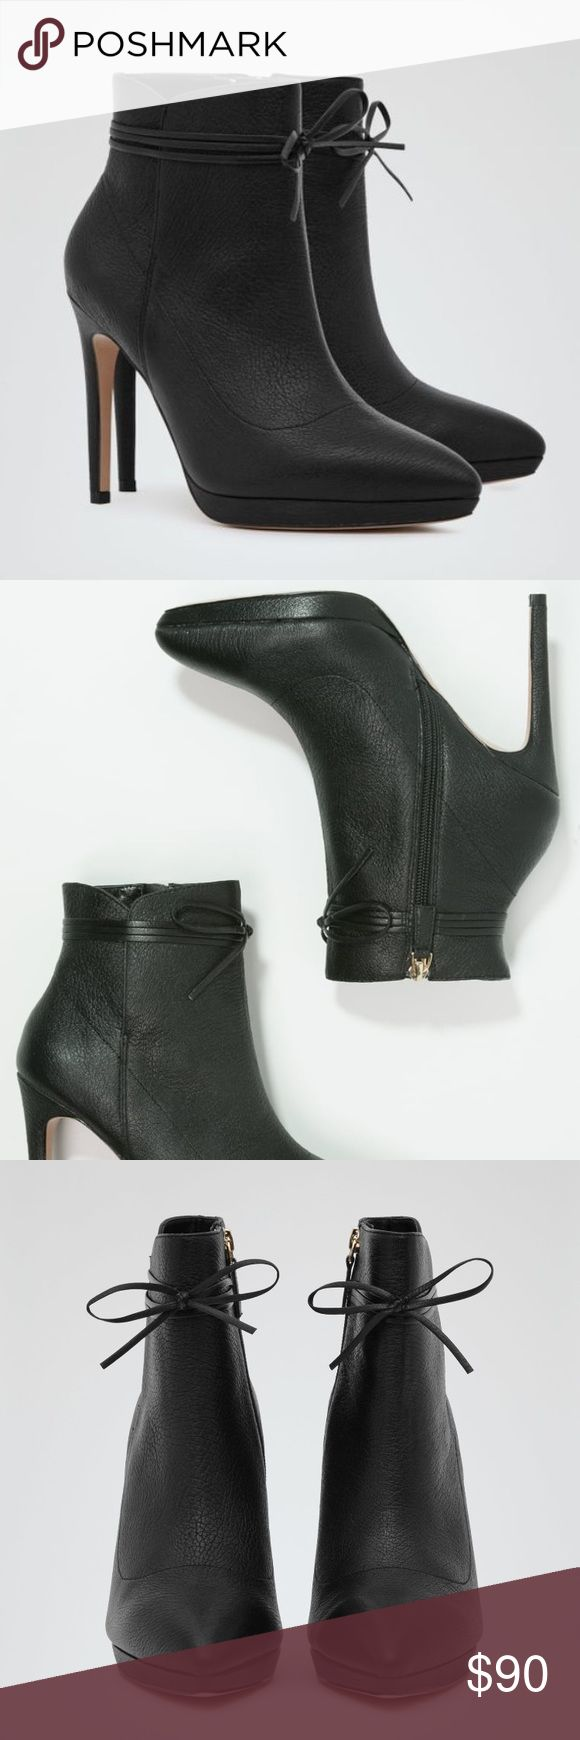 REISS black Orion bow bootie Love these flirty booties! I wish I could fit into them! Reiss Shoes Ankle Boots & Booties